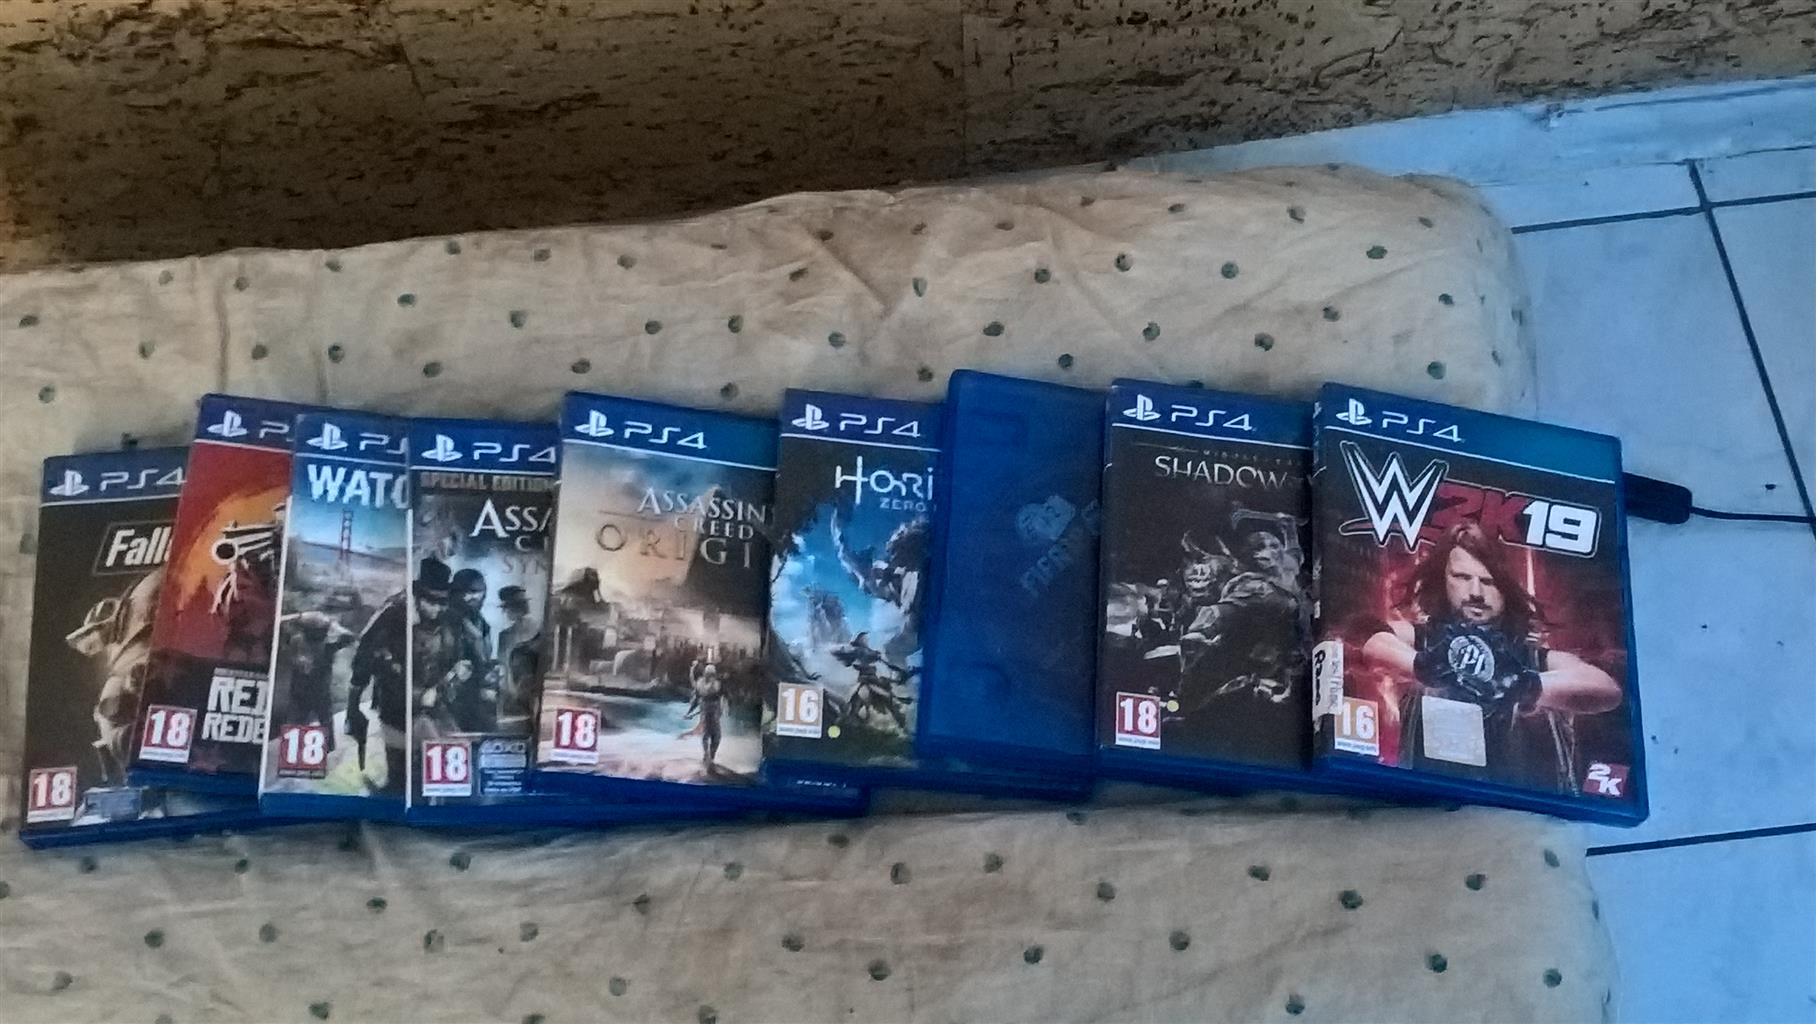 PS 4 + 9 GAMES to swap 4 Gaming Pc